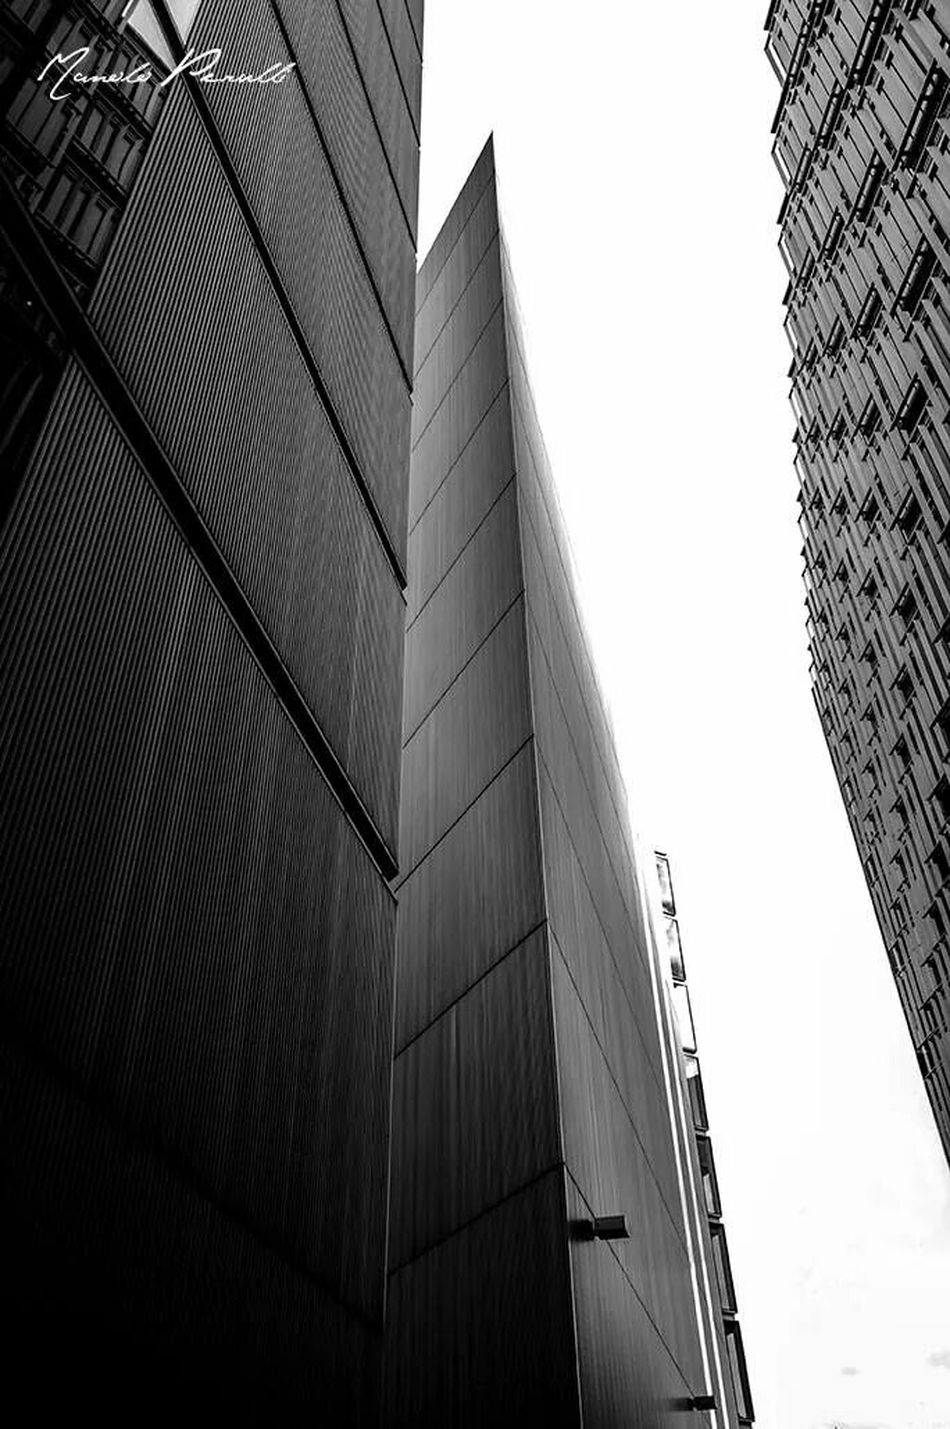 London Architecture_bw Manolo Perulli Fotografie Change Your Perspective Shootermag Long Lines The World Is Mine Dark Paradise EyeEm Best Shots - Architecture EyeEm Best Shots